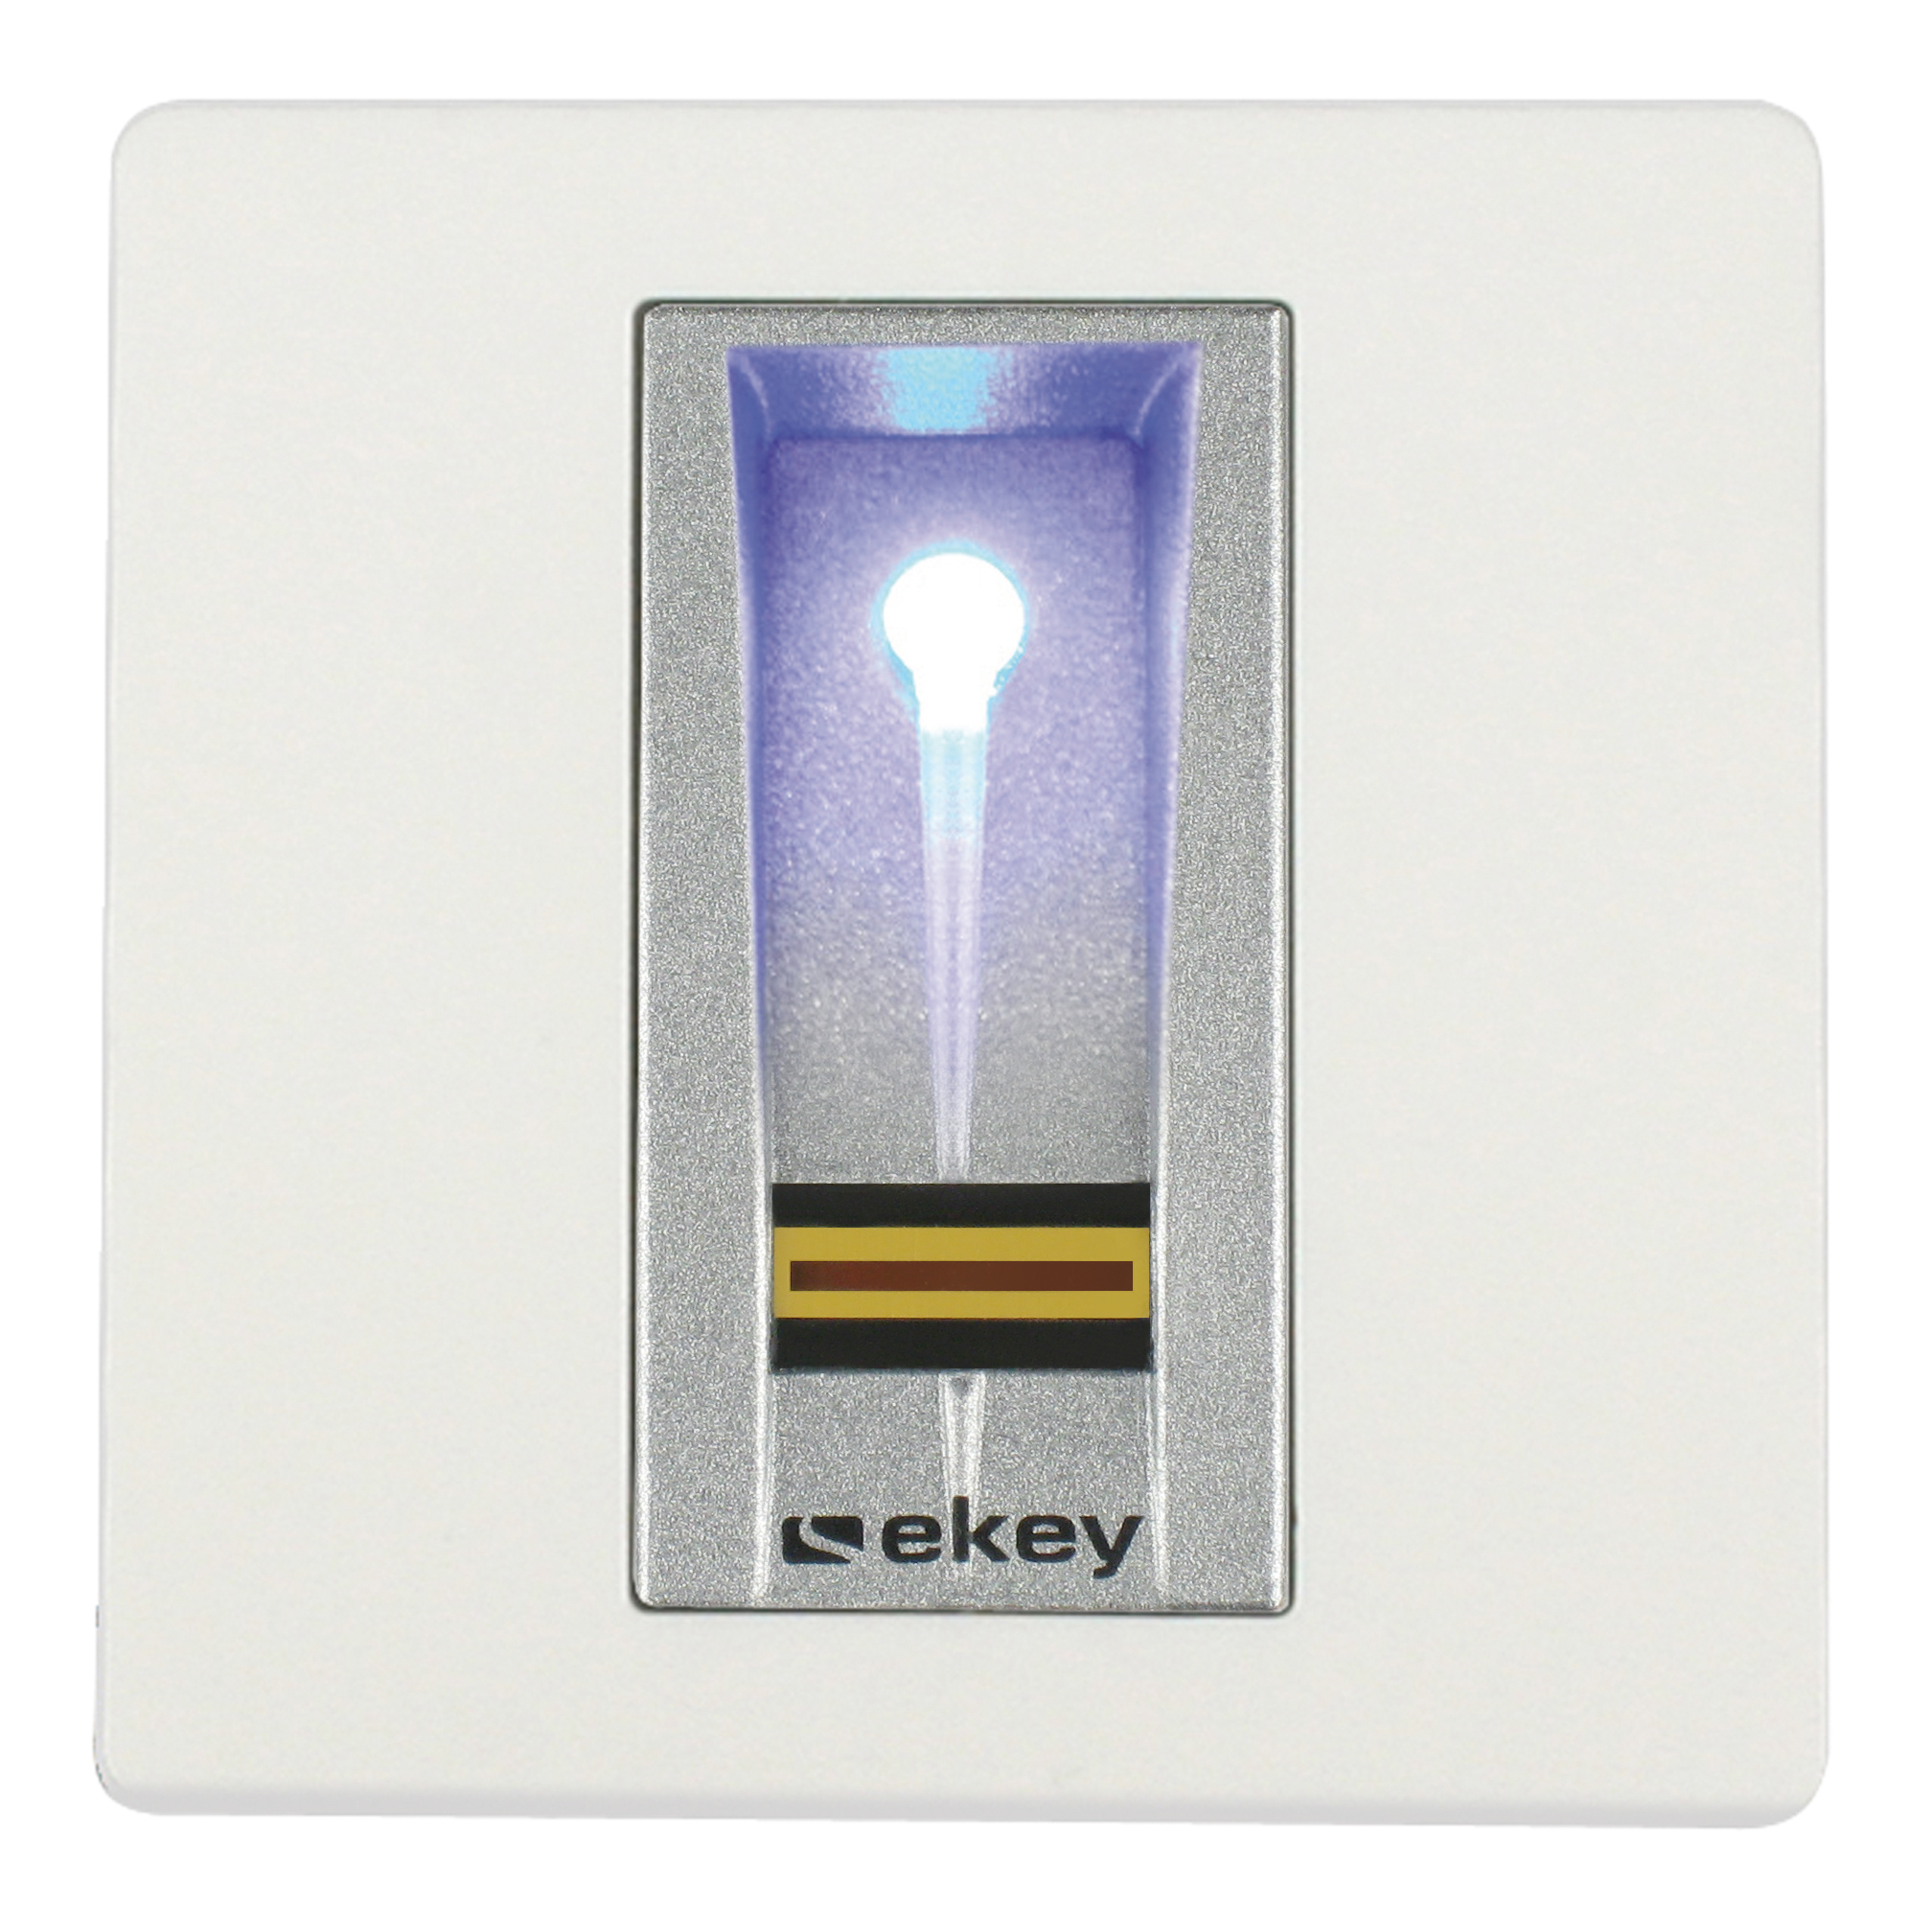 1 Stk ekey home Fingerscanner UP E, 99 Finger EK101148--